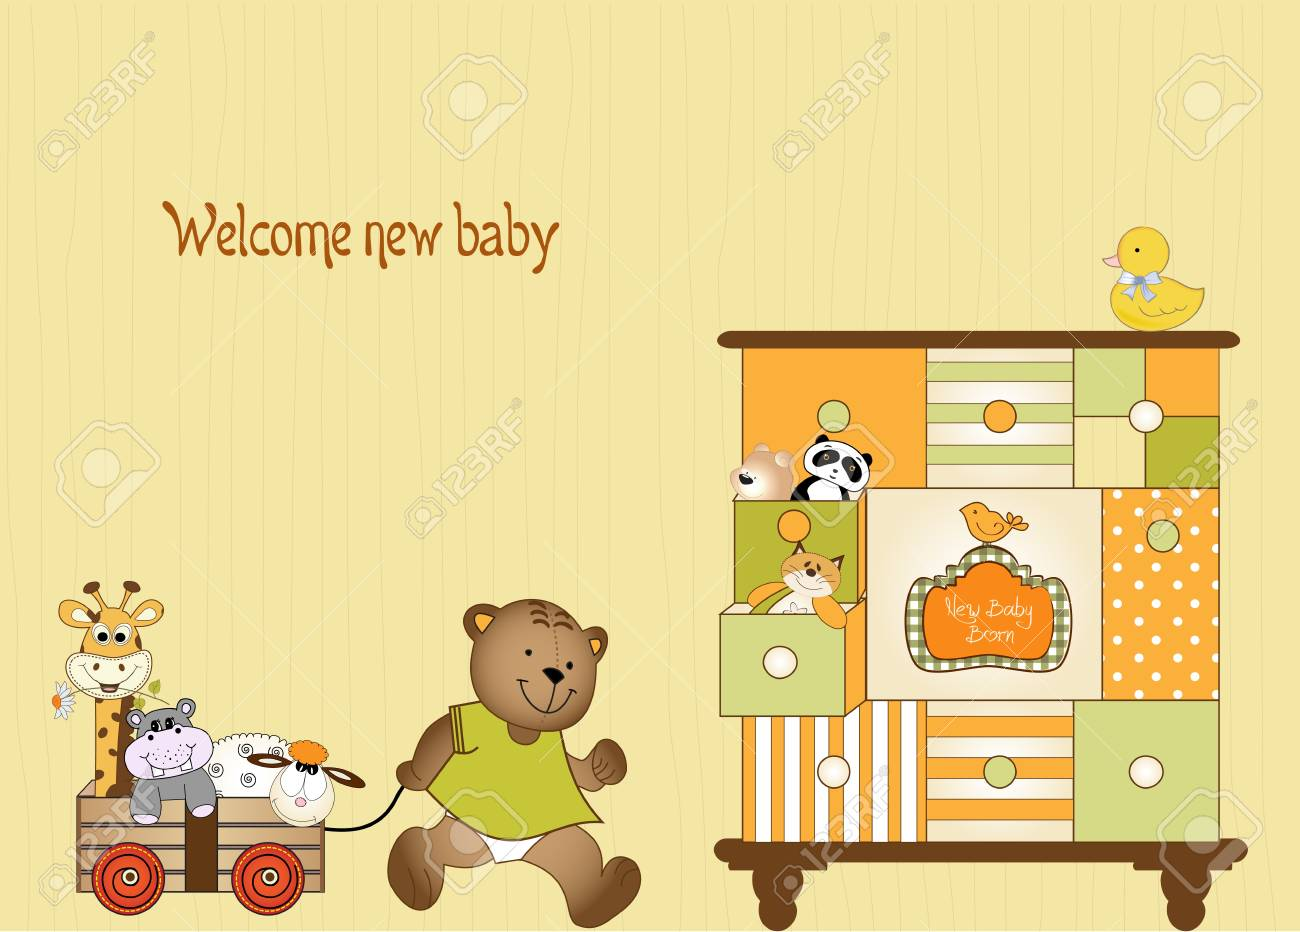 baby shower greeting card Stock Vector - 9806268